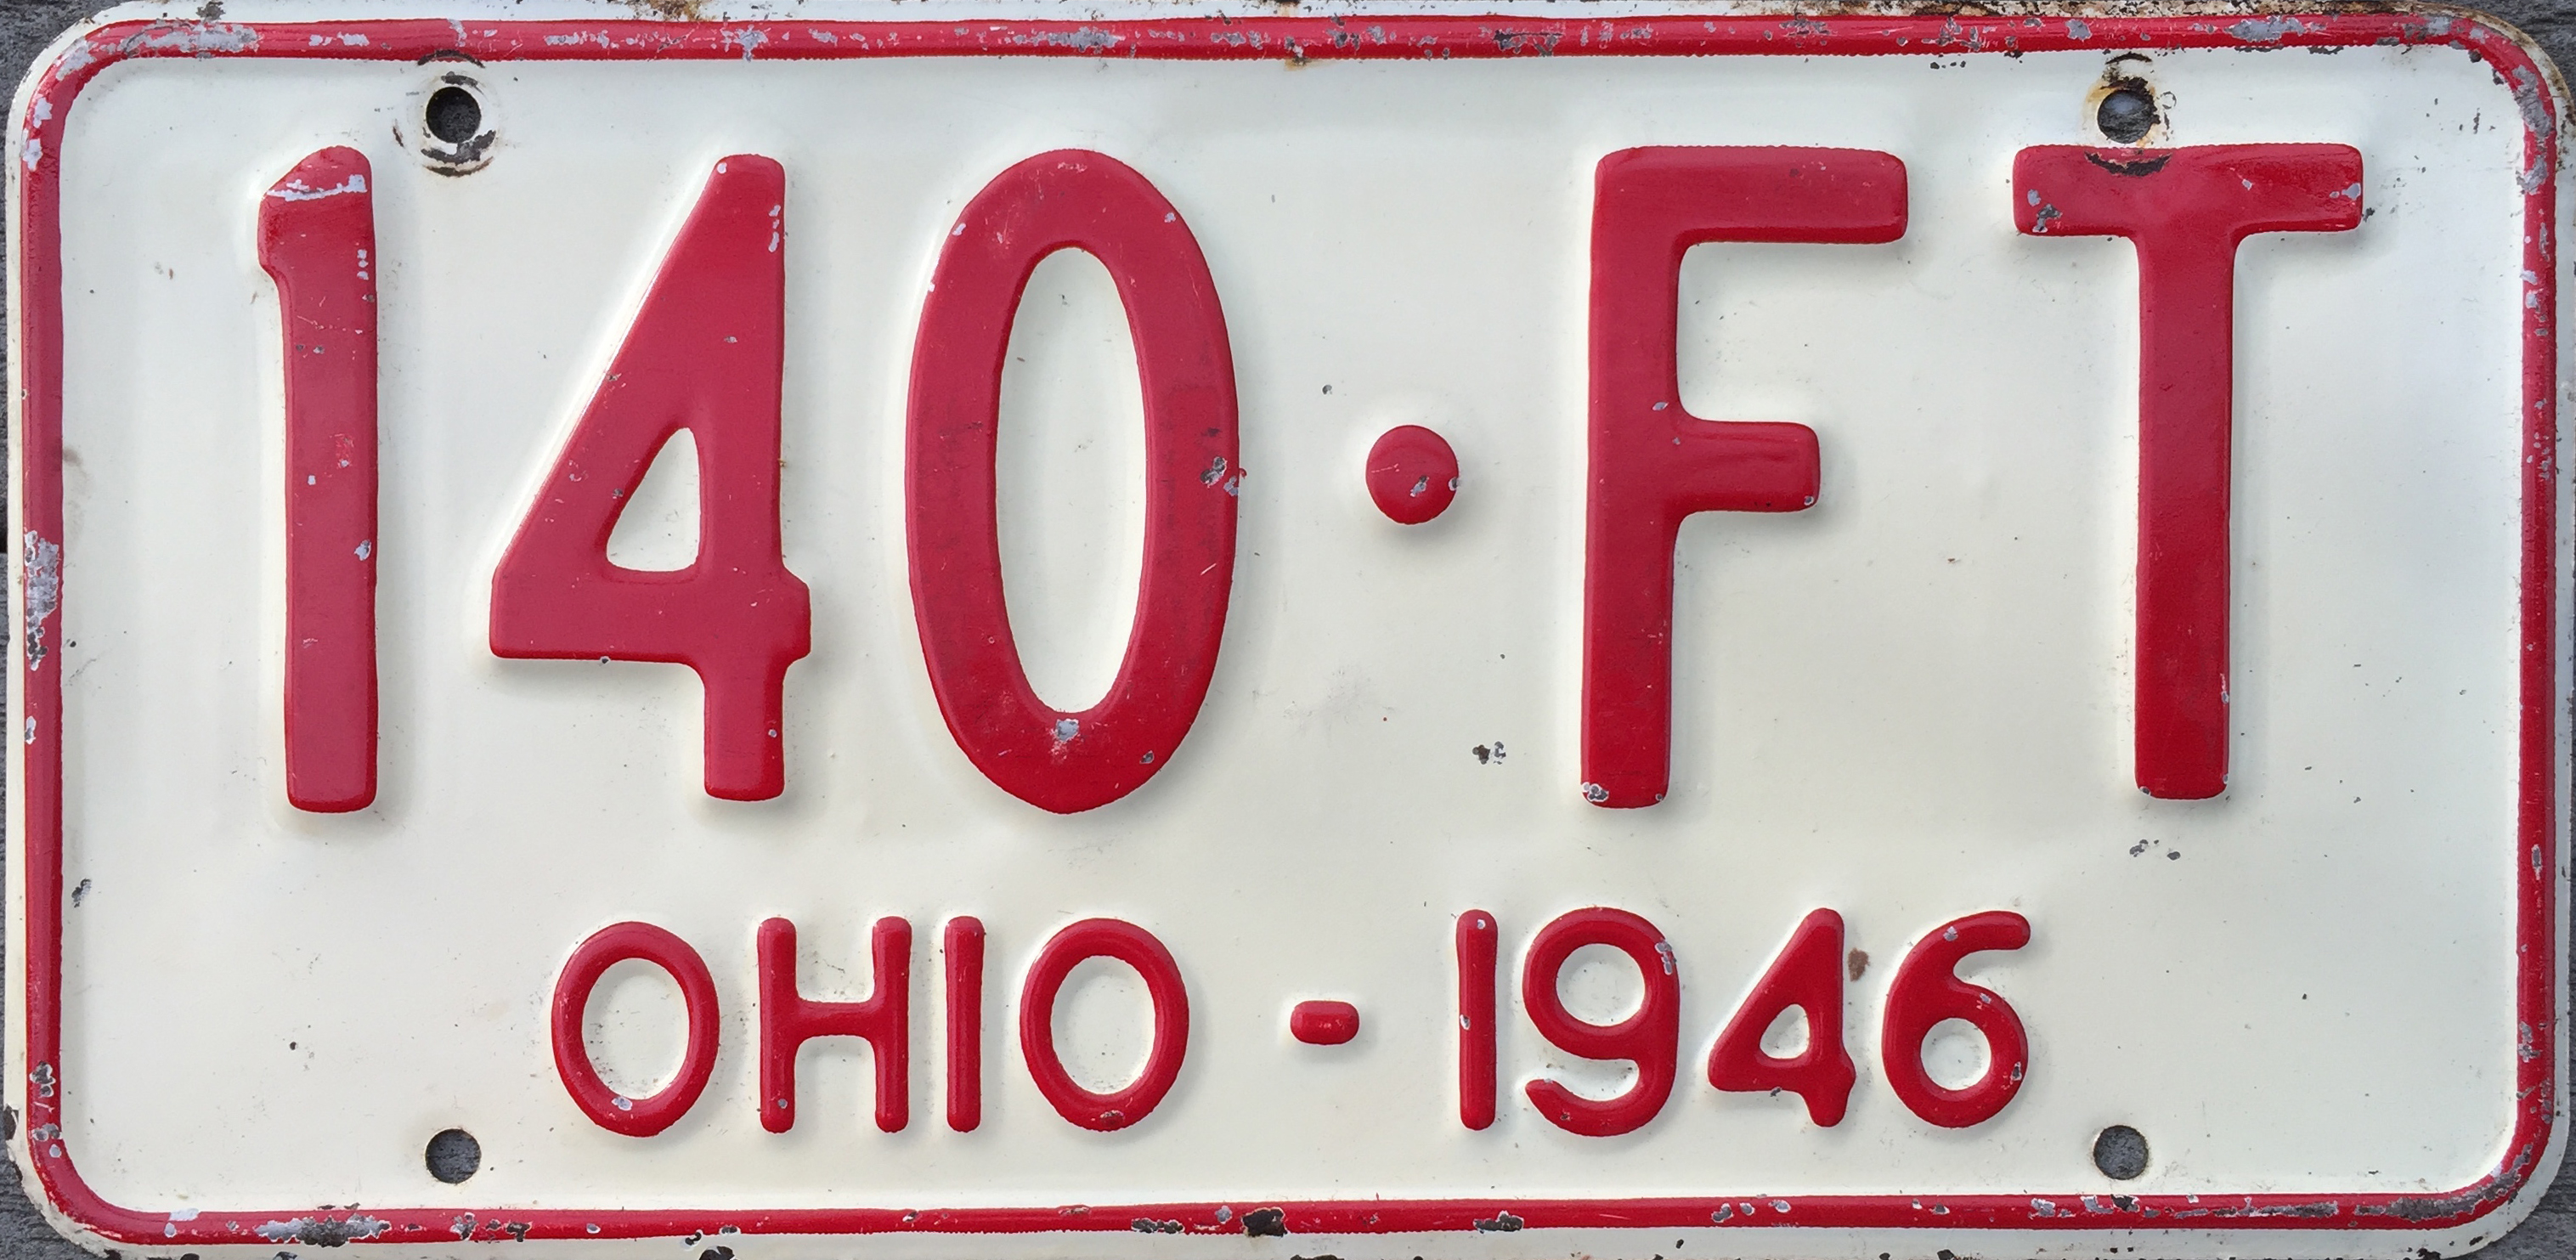 File:1946 Ohio license plate.JPG - Wikimedia Commons